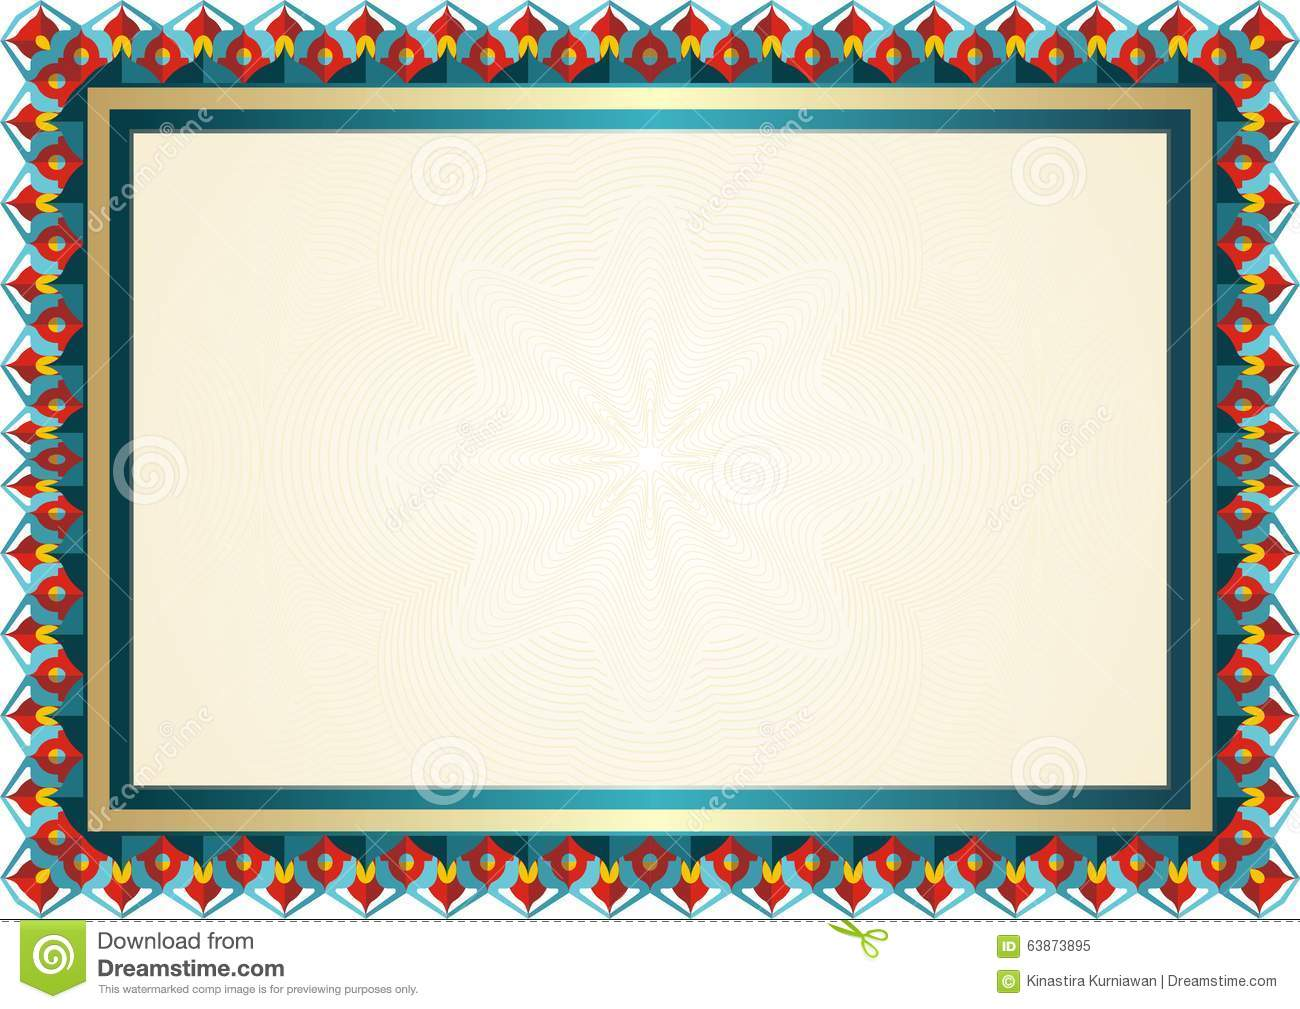 New certificate template stock vector image 63873895 for Headshot border template